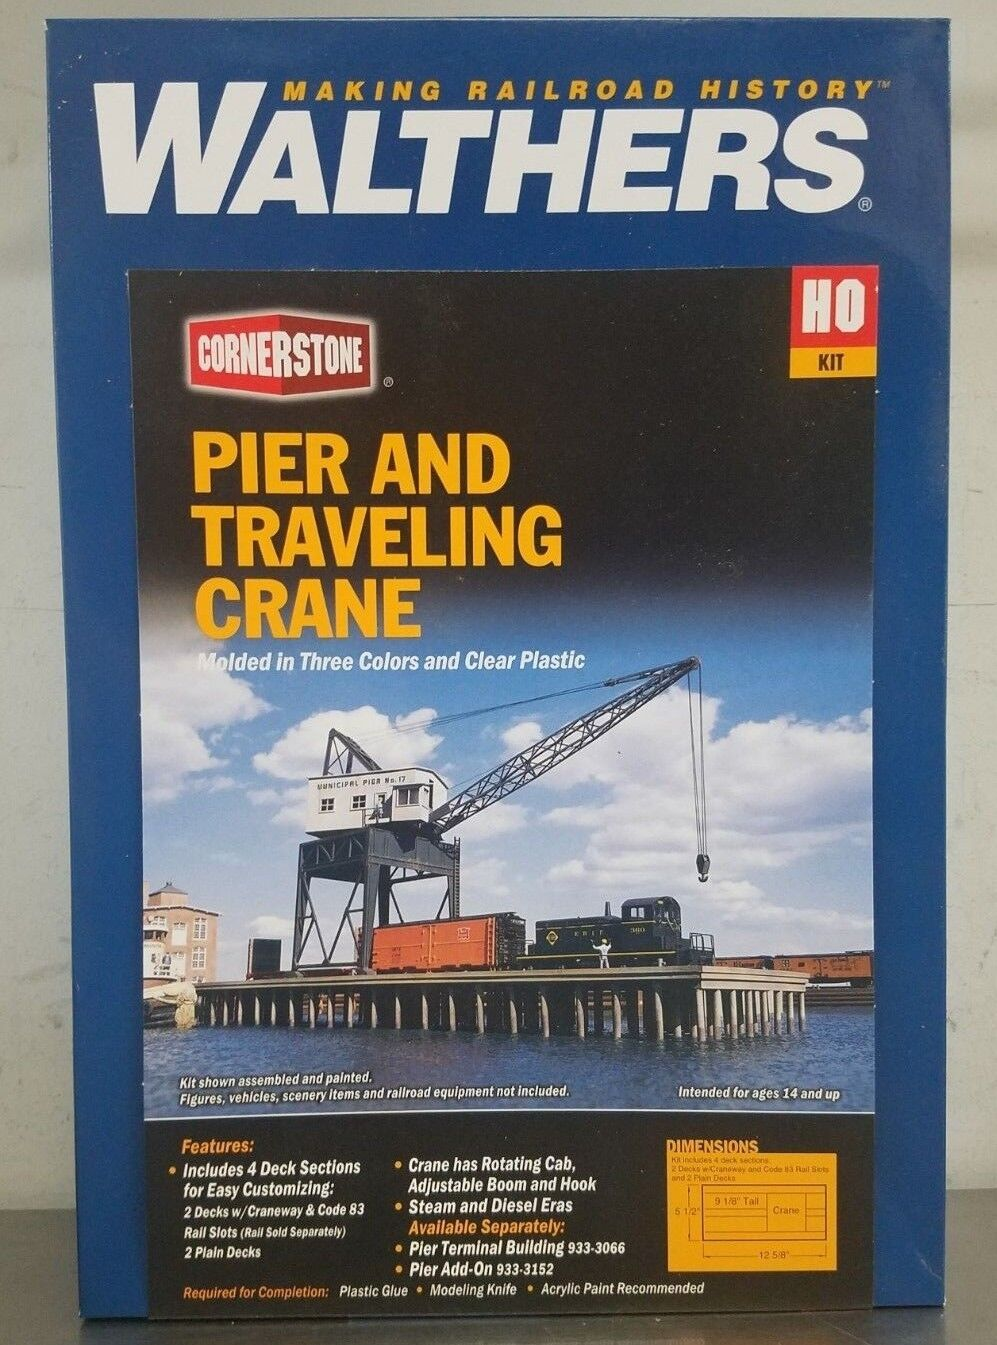 WALTHERS Cornerstone Pier and Traveling Crane Kit HO Scale 933-3067 - NEW